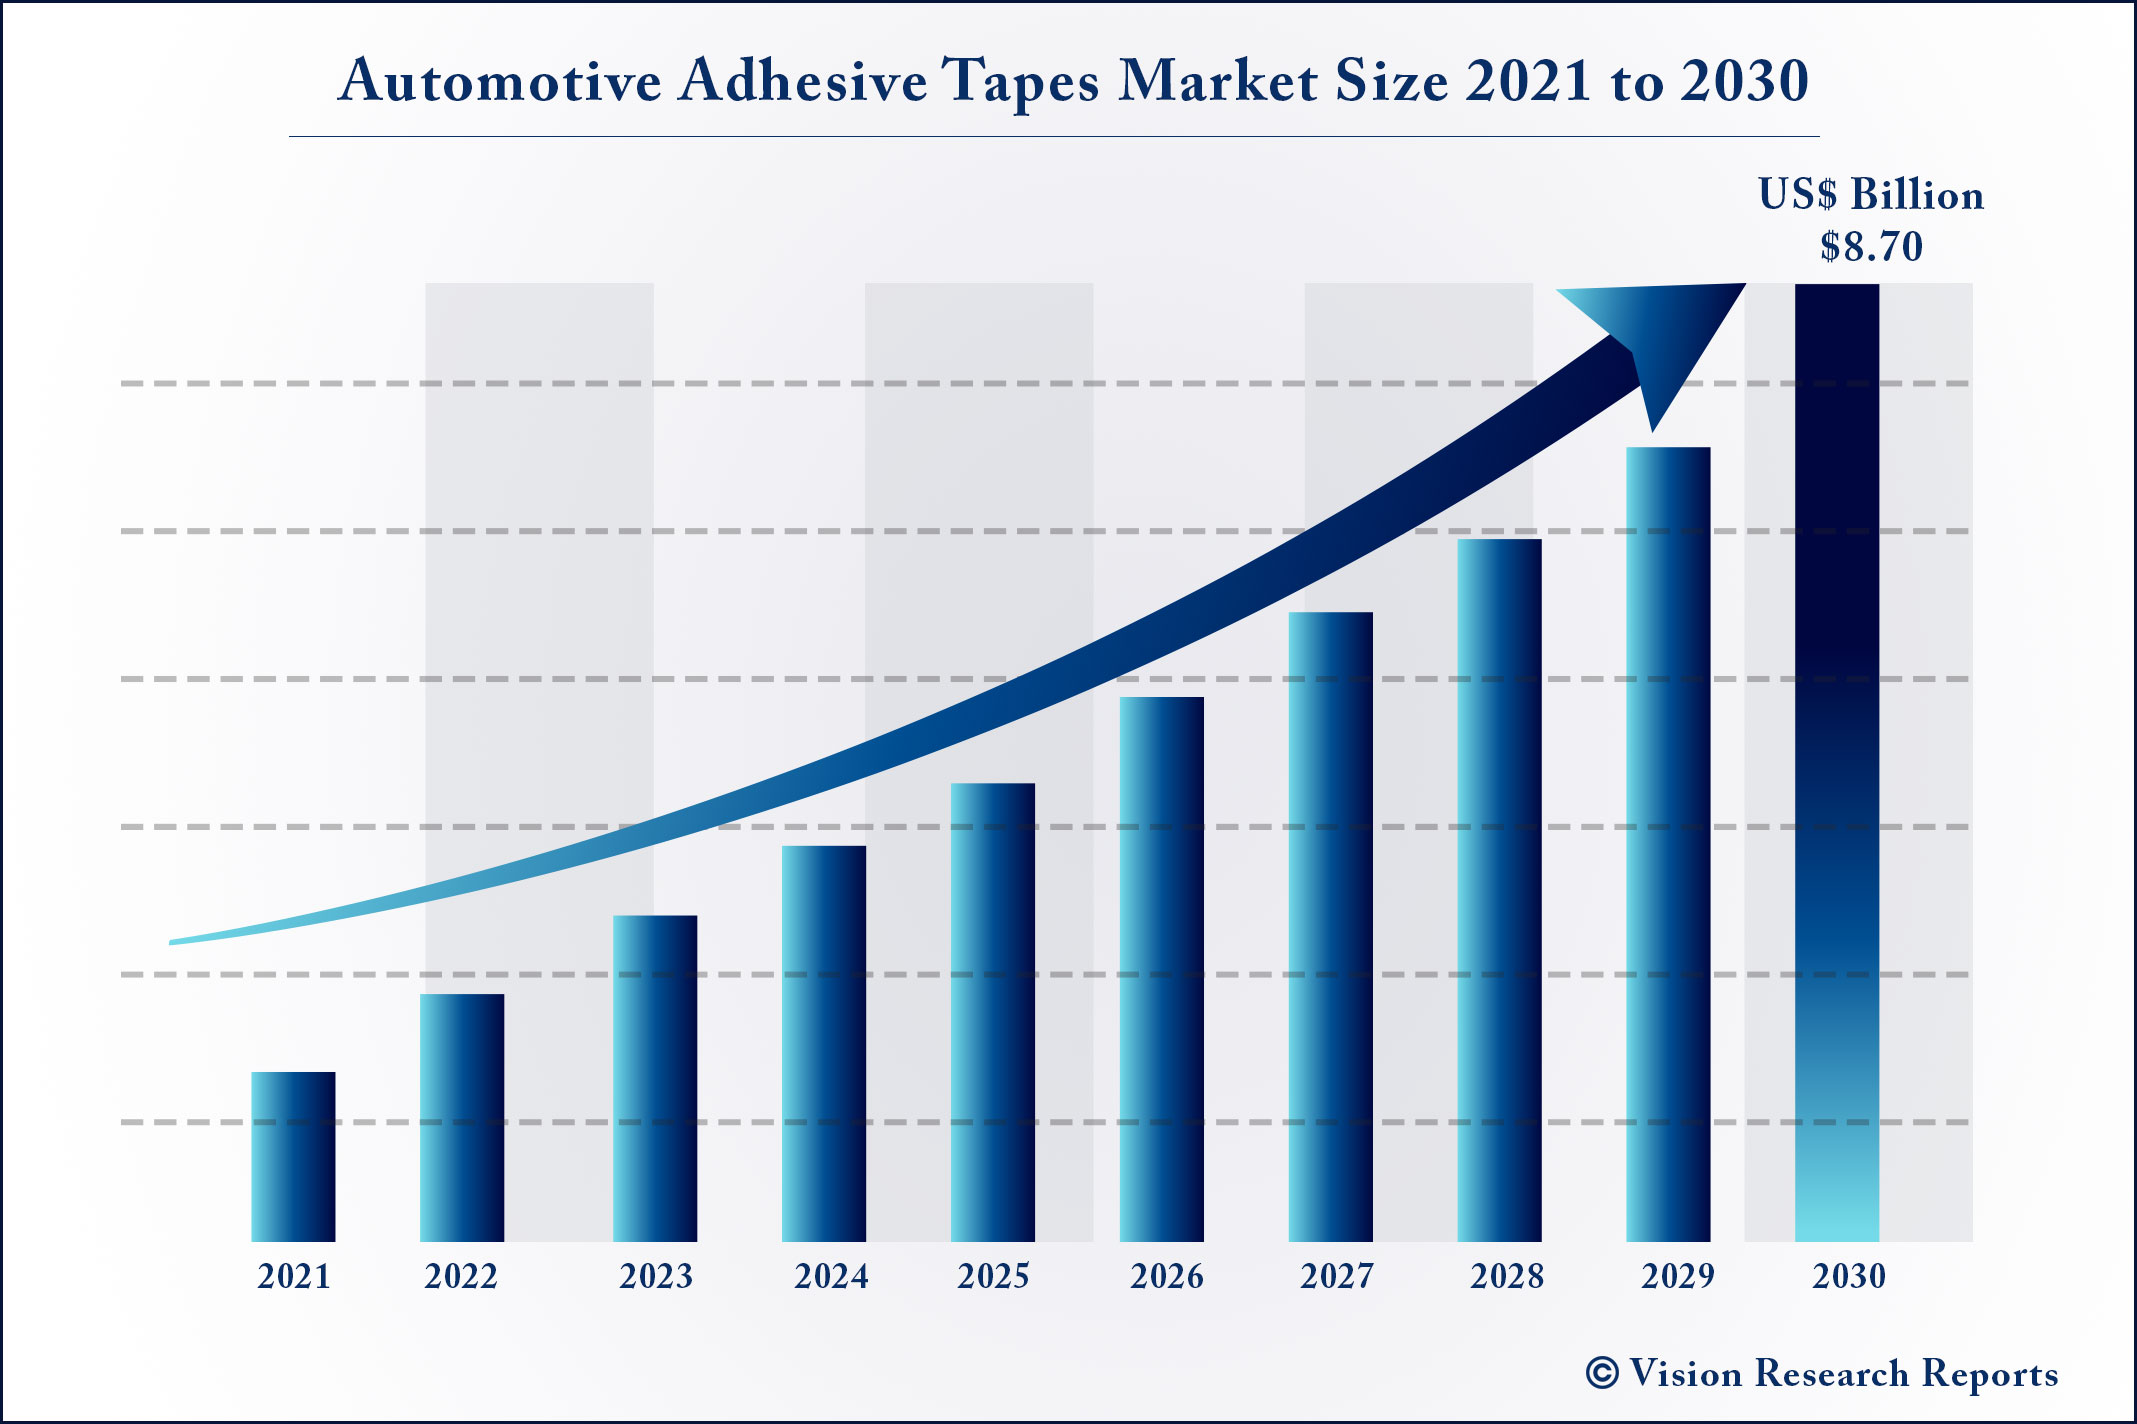 Automotive Adhesive Tapes Market Size 2021 to 2030